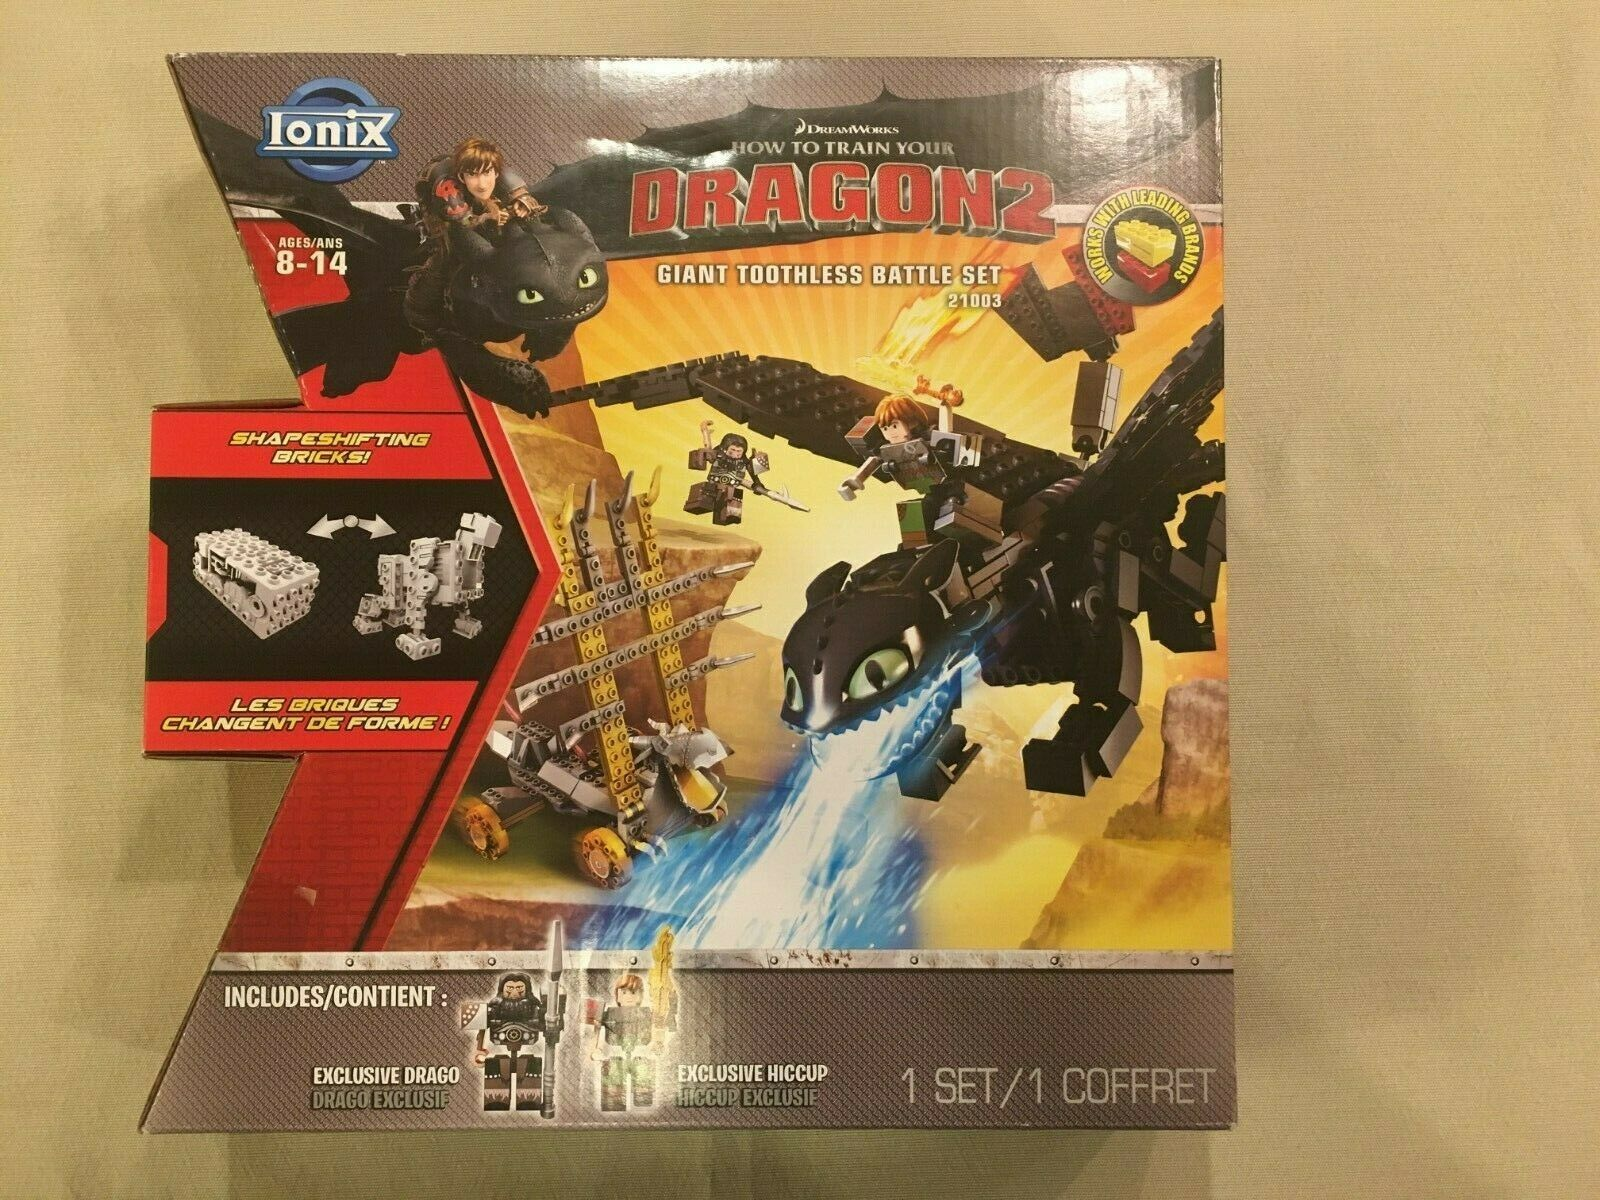 Ionix How To Train Your Dragon 2 Giant Toothless Battle Set 21003 New For Sale Online